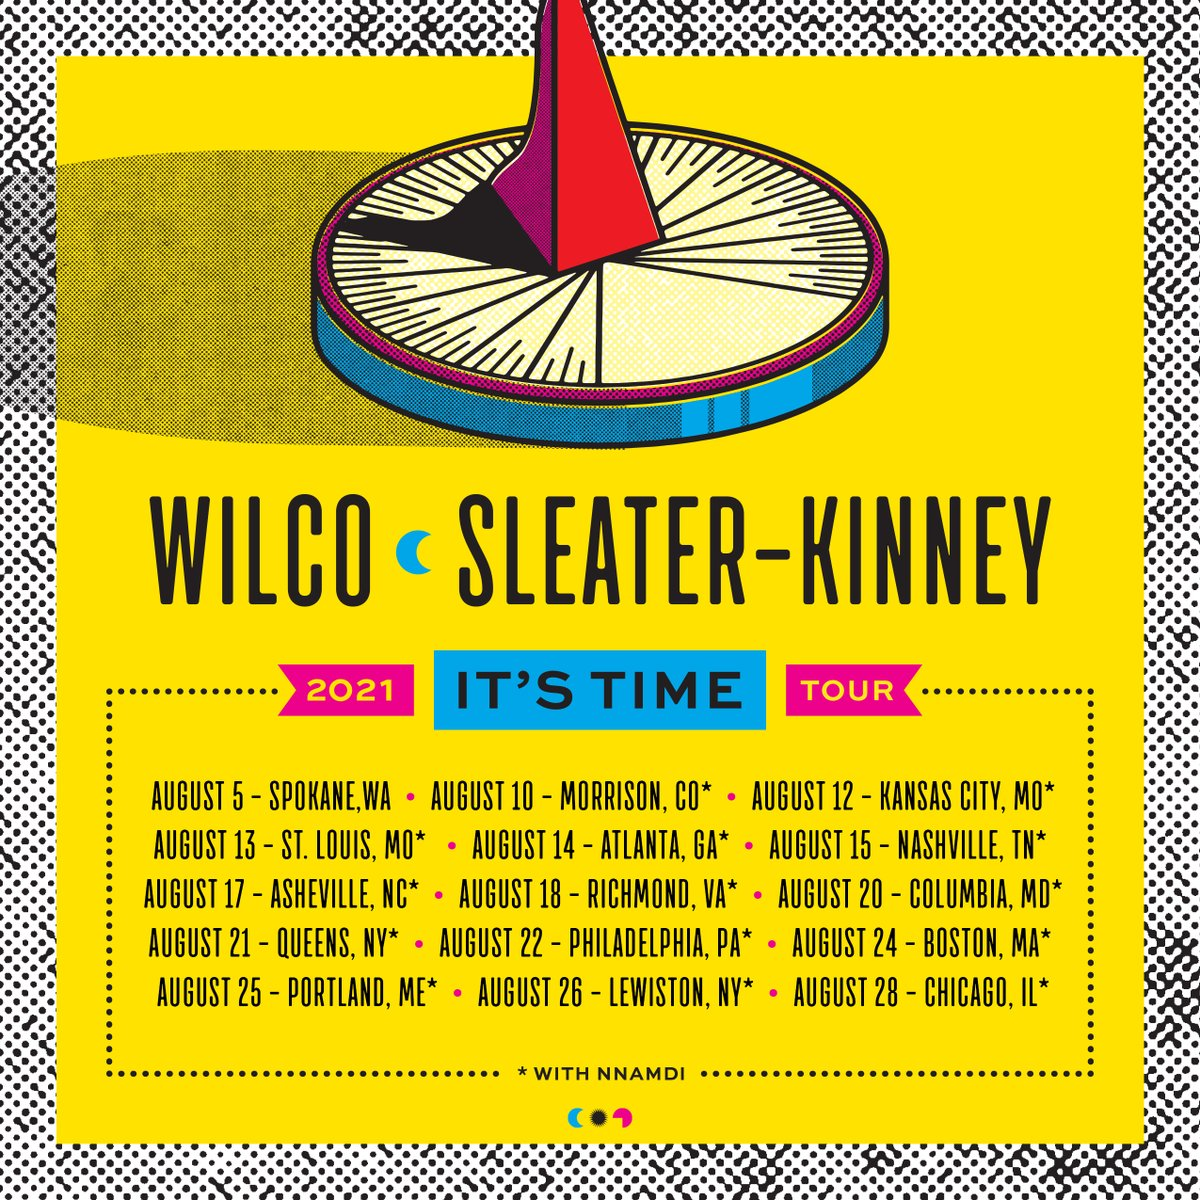 Wilco's and @Sleater_Kinney's tour with @NnamdiOgbonnaya has been rescheduled for August 2021.  We hope to see you at the new dates, where your current ticket will be honored.   Tickets: https://t.co/ZkNTzH9rQH Refund info: https://t.co/Ii85kCCMis https://t.co/T7rosBQmxi